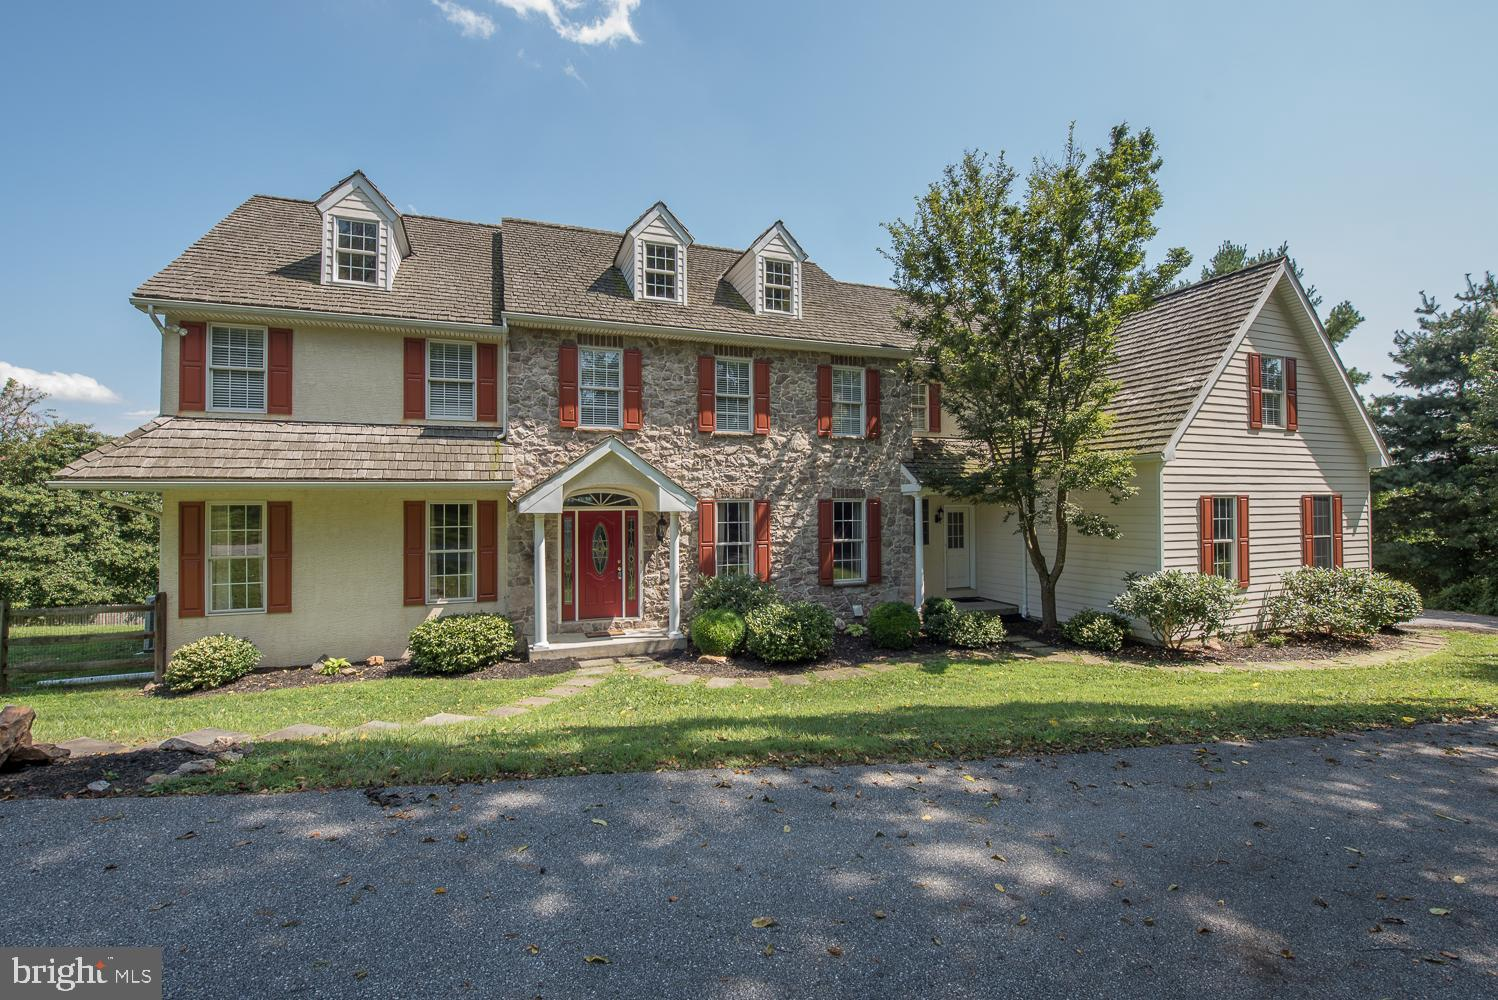 """Elegant Custom Built Home with gorgeous views of beautiful Chester County at it's finest.  Stunning front to back Center Hall flanked with Formal Living and Dining Rooms, Gleaming Hardwood Floors, Wrought Iron Spindles on Stair Railing, Wood Trends, Custom Millwork & Recessed Lighting throughout, First Floor Private Study, Two Powder Rooms, Gourmet Kitchen offers: Hardwood Floors, Granite Counter Tops, Gas Cooktop, Tile Backsplash, Wet Bar Area with Wine Cooler, Two Pantries, Stunning Cabinetry, Chef's delight with a Large Island with a Double Sink, adjoining Morning Room/Breakfast Room with French Doors leading to Brand New Trek Decking with Cable Railing to enjoy a clear view of the pastoral views.  Vaulted Family Room open to Kitchen, Floor to Ceiling Stone Wood Burning Fireplace with Gorgeous Views out every window.  Luxurious Master Bedroom with a atmosphere light in the Tray Ceiling, French Door to Private Balcony, Walk-in Closet, Full Bathroom with 18"""" Tile Floor, Jetted Soaking Tub, Two Separate Vanities, Oversized Tiled Shower with Seamless Glass Door, Separate Toilet Closet & Linen Closet.  Prince/Princess Suite with Double Closet, Full Tile Floor Bathroom with Double Sinks, Door to Tub/Shower/Toilet Area, Second Floor Laundry Room with Shelving & Sink.  Very Spacious Bedroom with Lots of Closet Space and a Bonus Room.  Two Additional Bedroom share a Jack-n-Jill Bathroom with Tile Floor and Tub/Shower Combo.  Full Walkout Basement with a SwimEx Lap Pool Room with a Full Wall of Nano Doors to Open to the Outdoors.   Full Custom Bathroom with a Steam Multi Head Shower, Unique Tile Backsplash with a laser cut outline of pre-9/11 NYC, Vanity with Corian Counter Top, Tile Floor.  Endless Possibilities for this fabulous unfinished area that offers plenty of light and Amazing Views.  Fenced in Backyard, Storage Area under deck.  A short walk to Historic Marshalton Inn/Four Dogs Pub, Mins. to Downtown West Chester.  This property has it all...the peacefulness of c"""